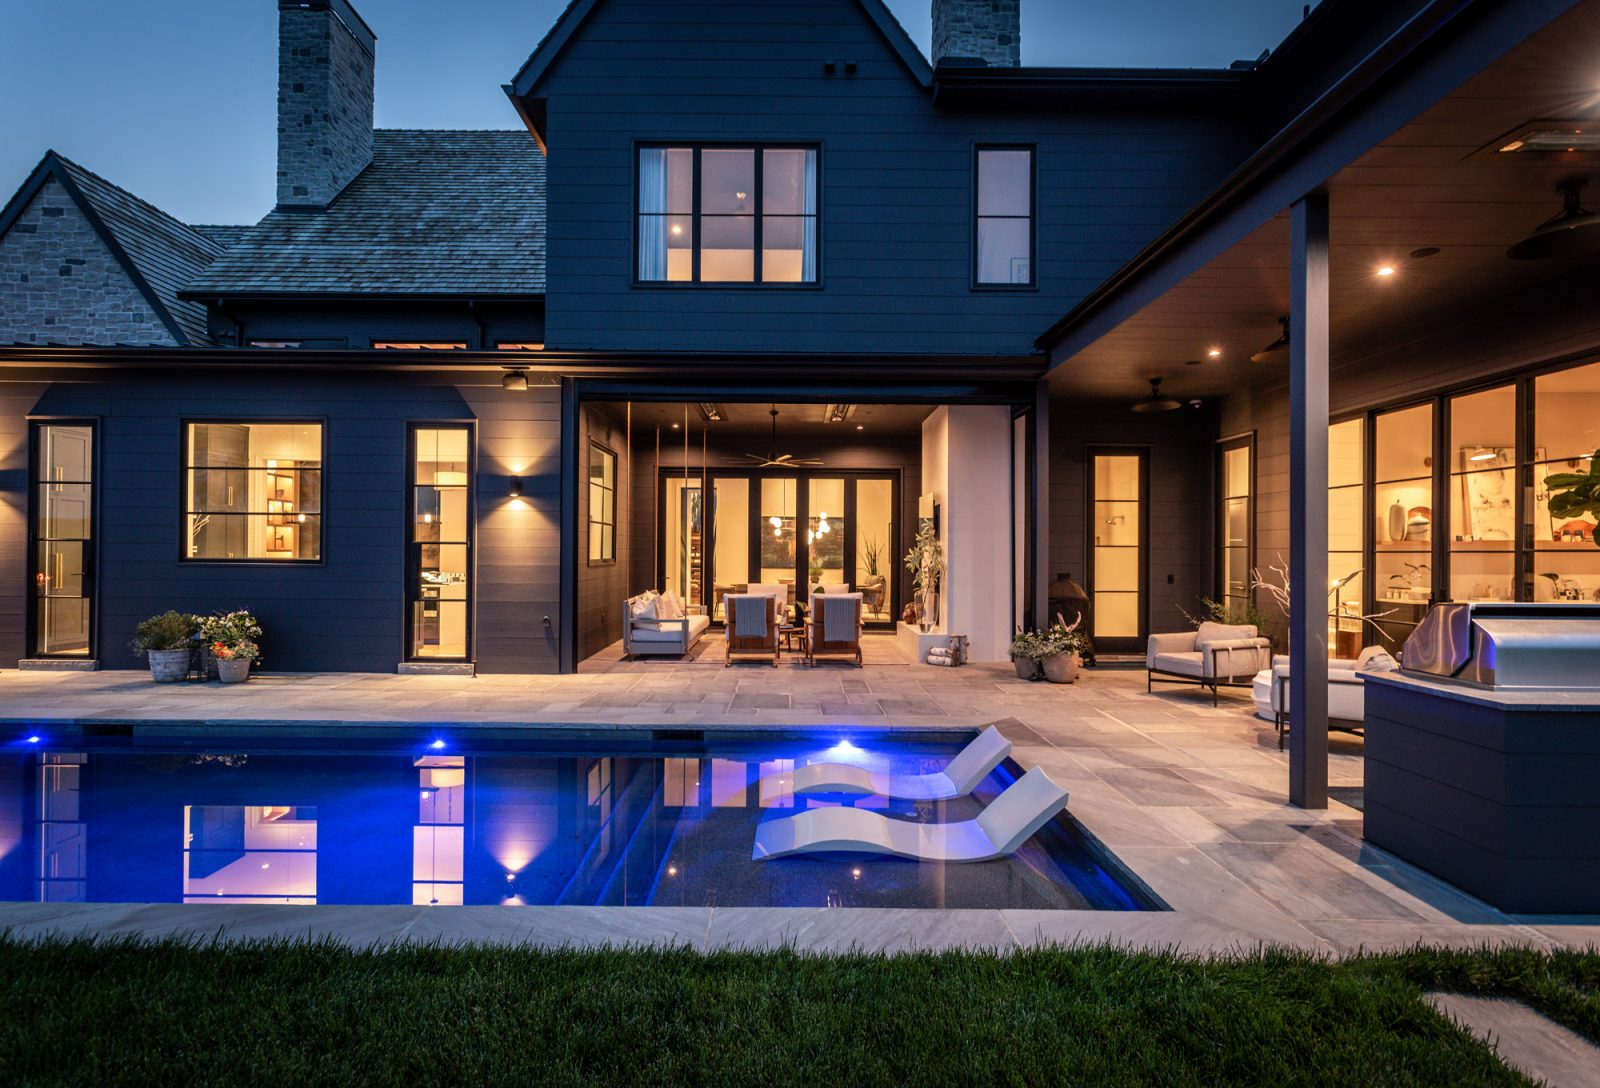 Covered patio outdoor design by marie-joe bouffard of jfy designs white outdoor chairs, porch swing outdoor sitting area fire place rondo pool with lounge chairs